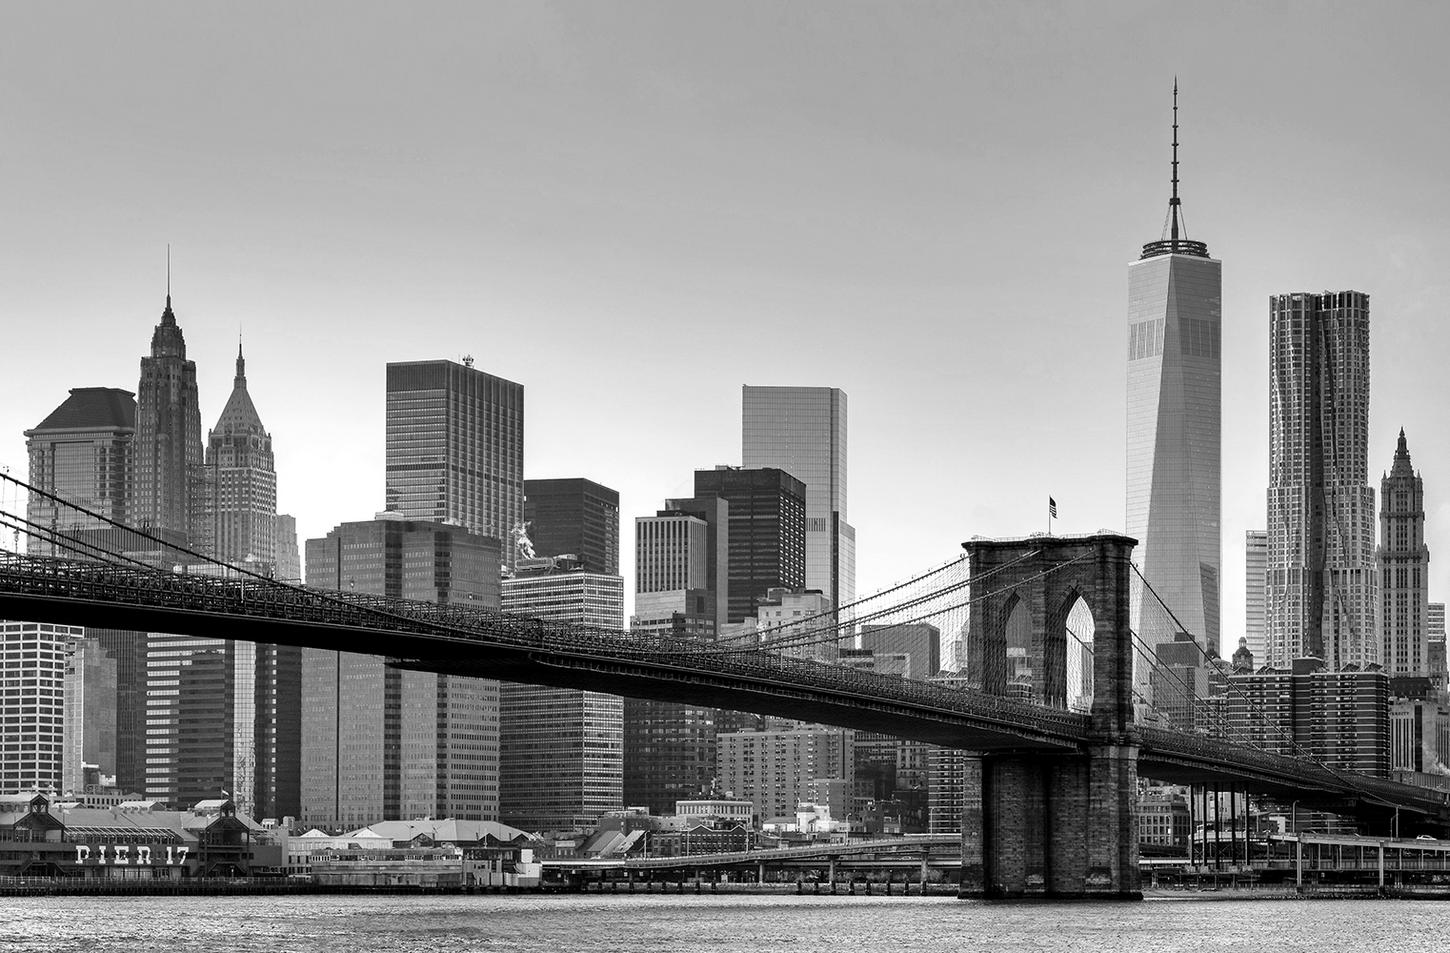 kiss fototapeten zu besten preisen fototapete new york 175x115cm brooklyn bridge skyline. Black Bedroom Furniture Sets. Home Design Ideas